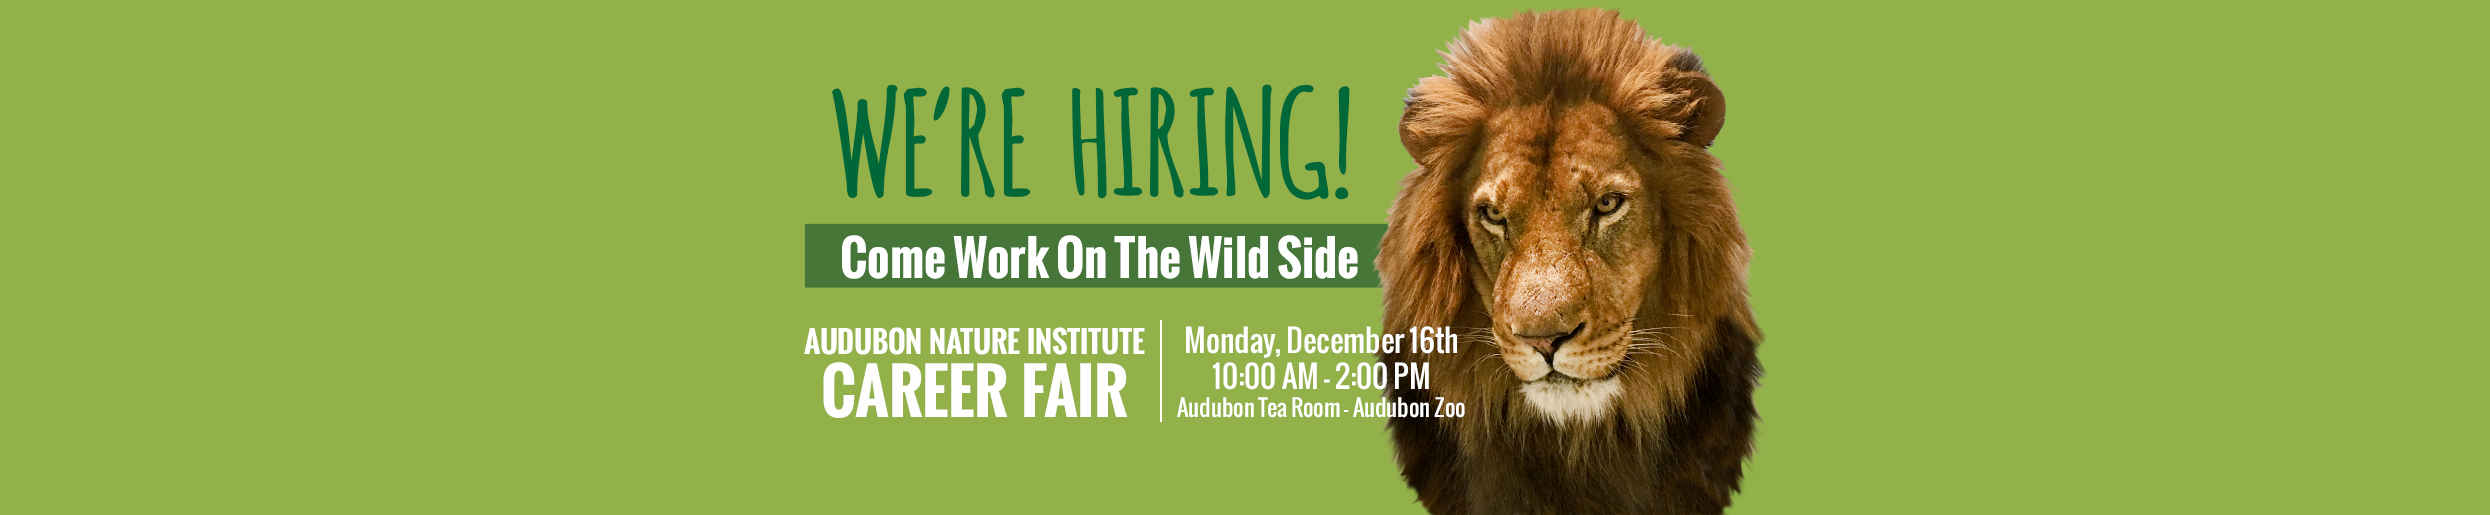 career-fair-lion-2490